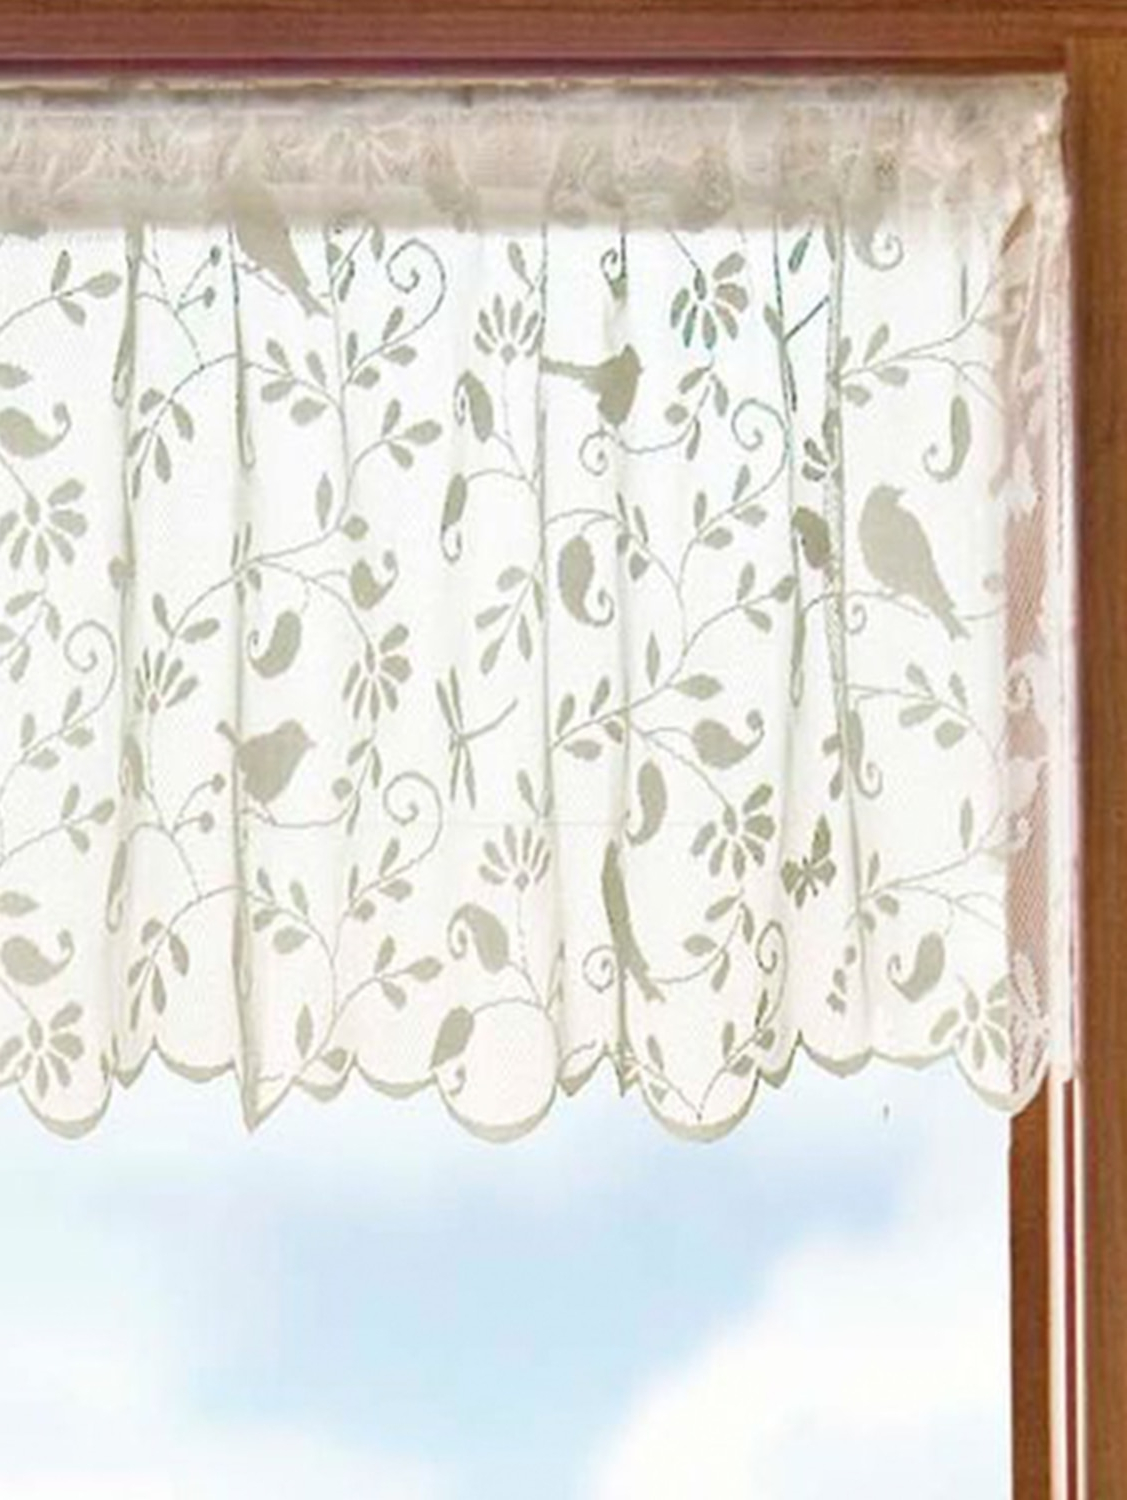 Best And Newest Ivory Knit Lace Bird Motif Window Curtain Pertaining To Swags Or Valance Ivory Knit Lace Bird Motif Kitchen Window (View 2 of 20)